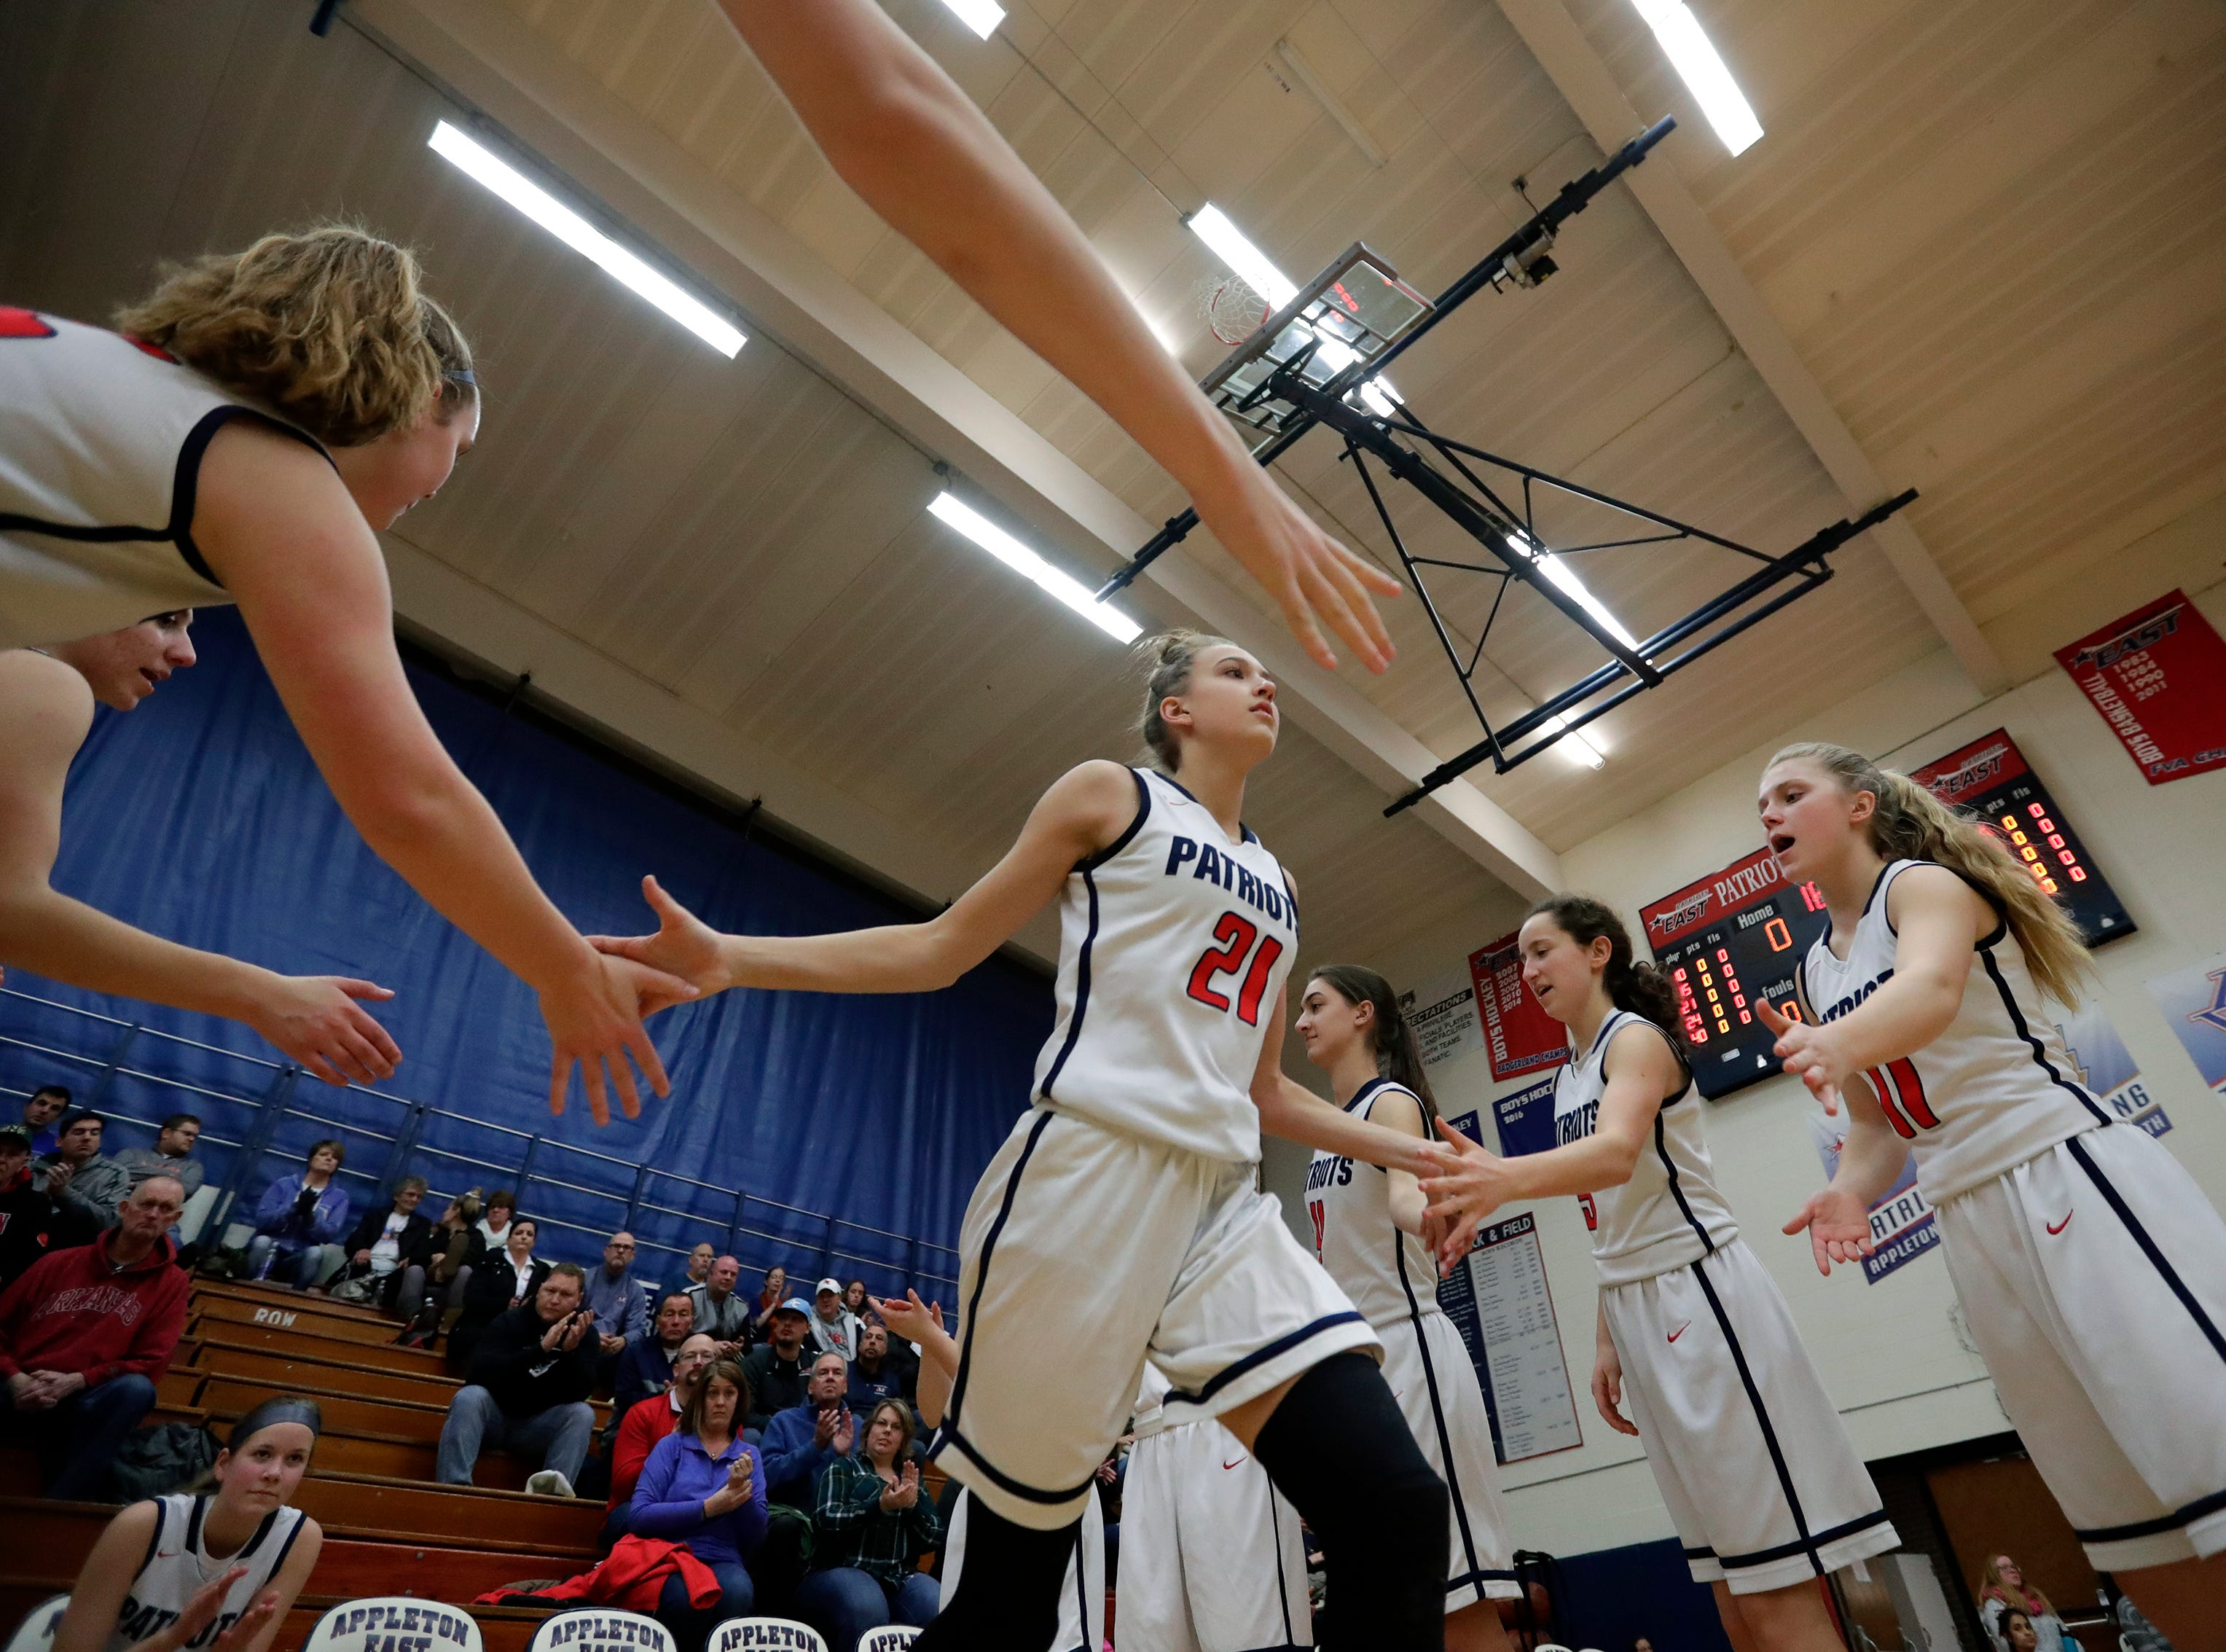 Appleton East High School's Emily LaChapell (21) takes to the court as she is announced against Appleton West High School during their girls basketball game Friday, January 11, 2019, at Appleton East High School in Appleton, Wis. 